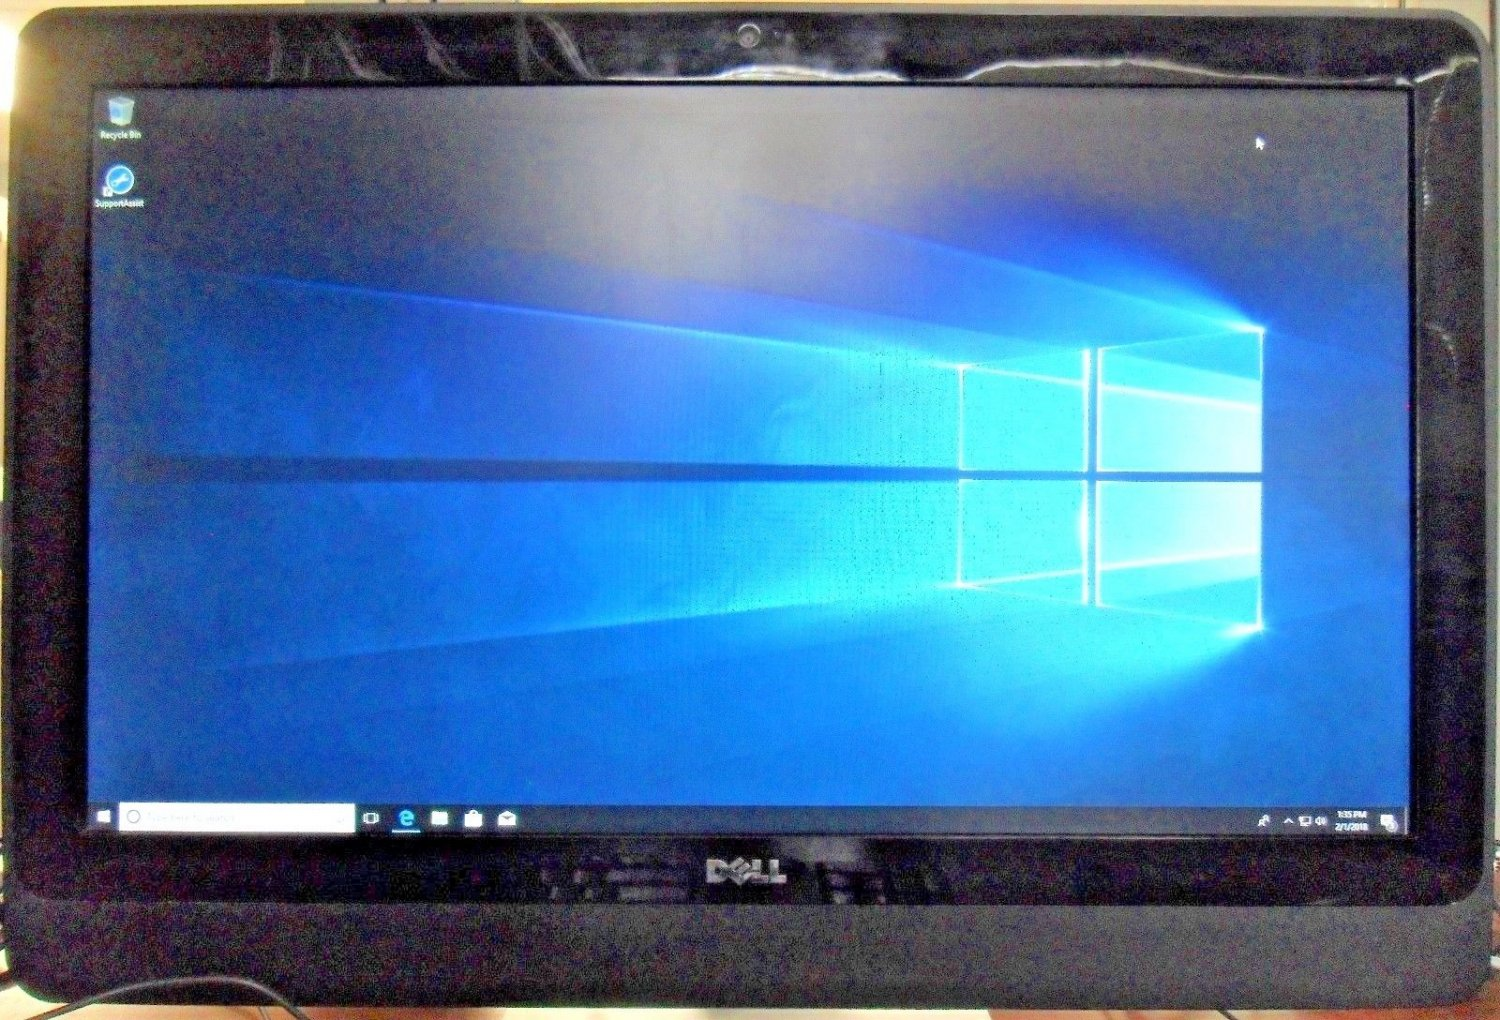 Dell Inspiron One 2330 23in. Windows 10 Pro